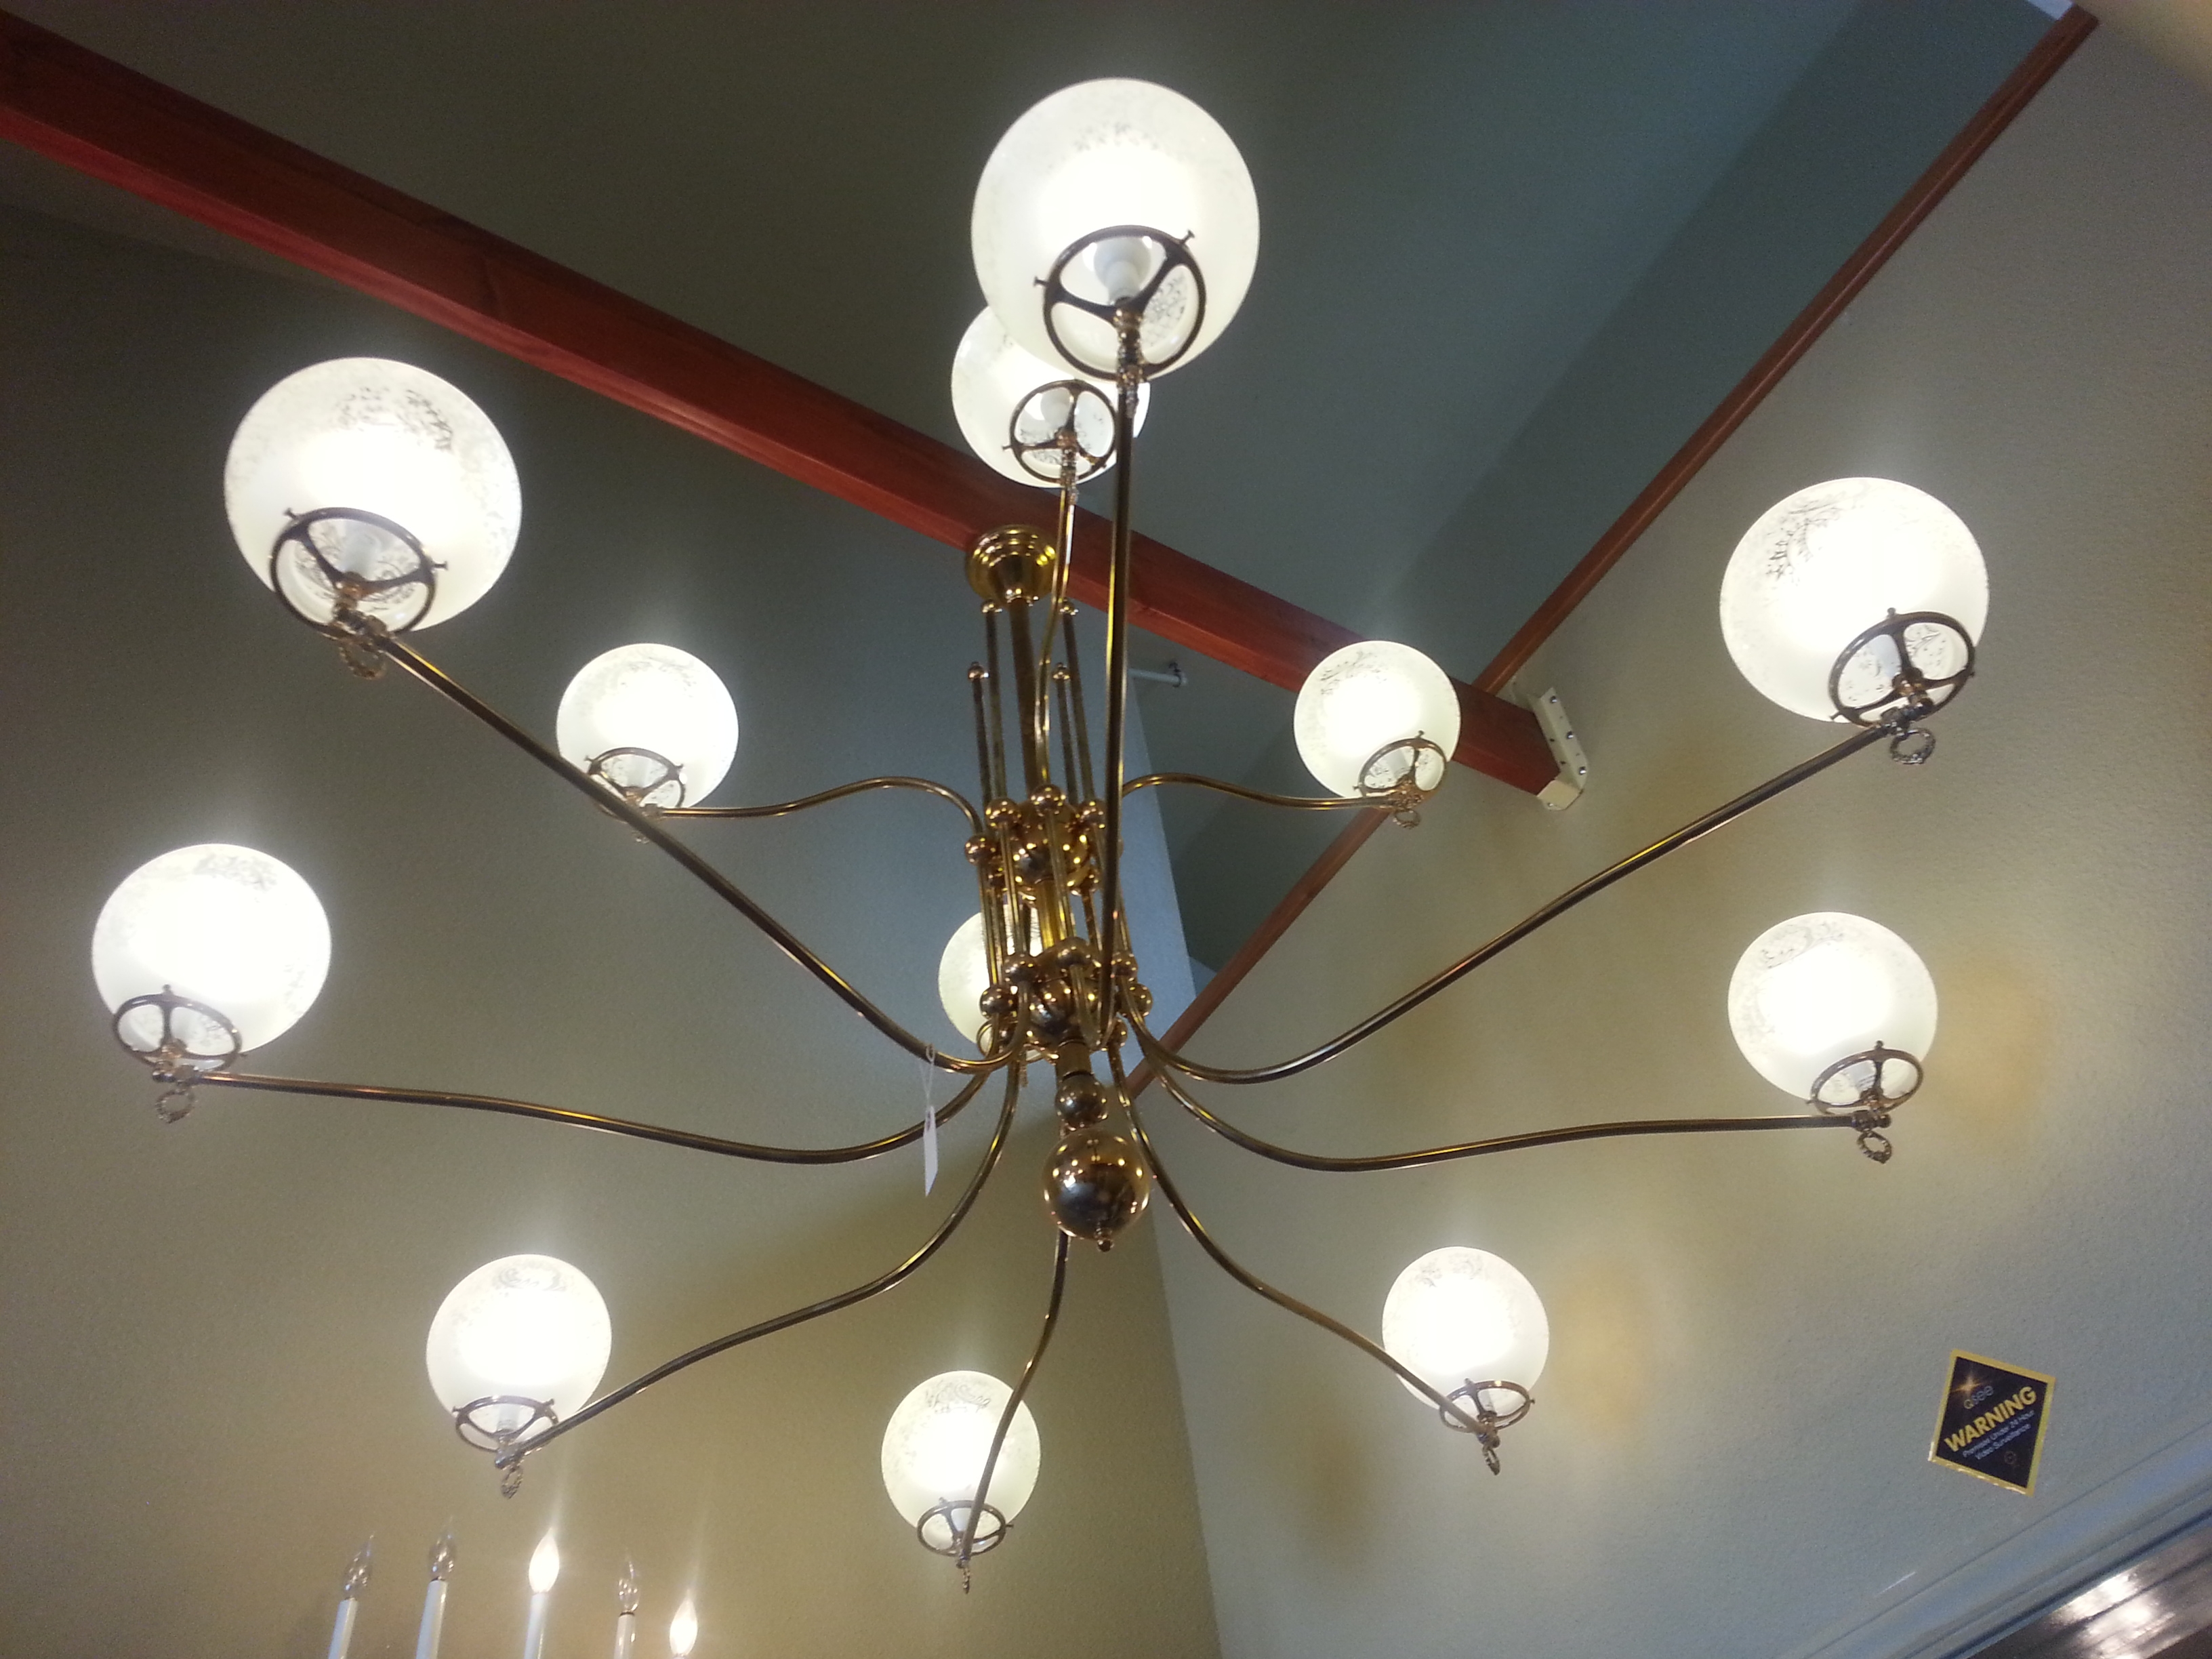 Antique light fixture sales repair san rafael marin county nowells fine antique lighting has been offering fine lighting solutions for over 50 years our 5000 sq ft san rafael ca location includes a fine antique arubaitofo Gallery